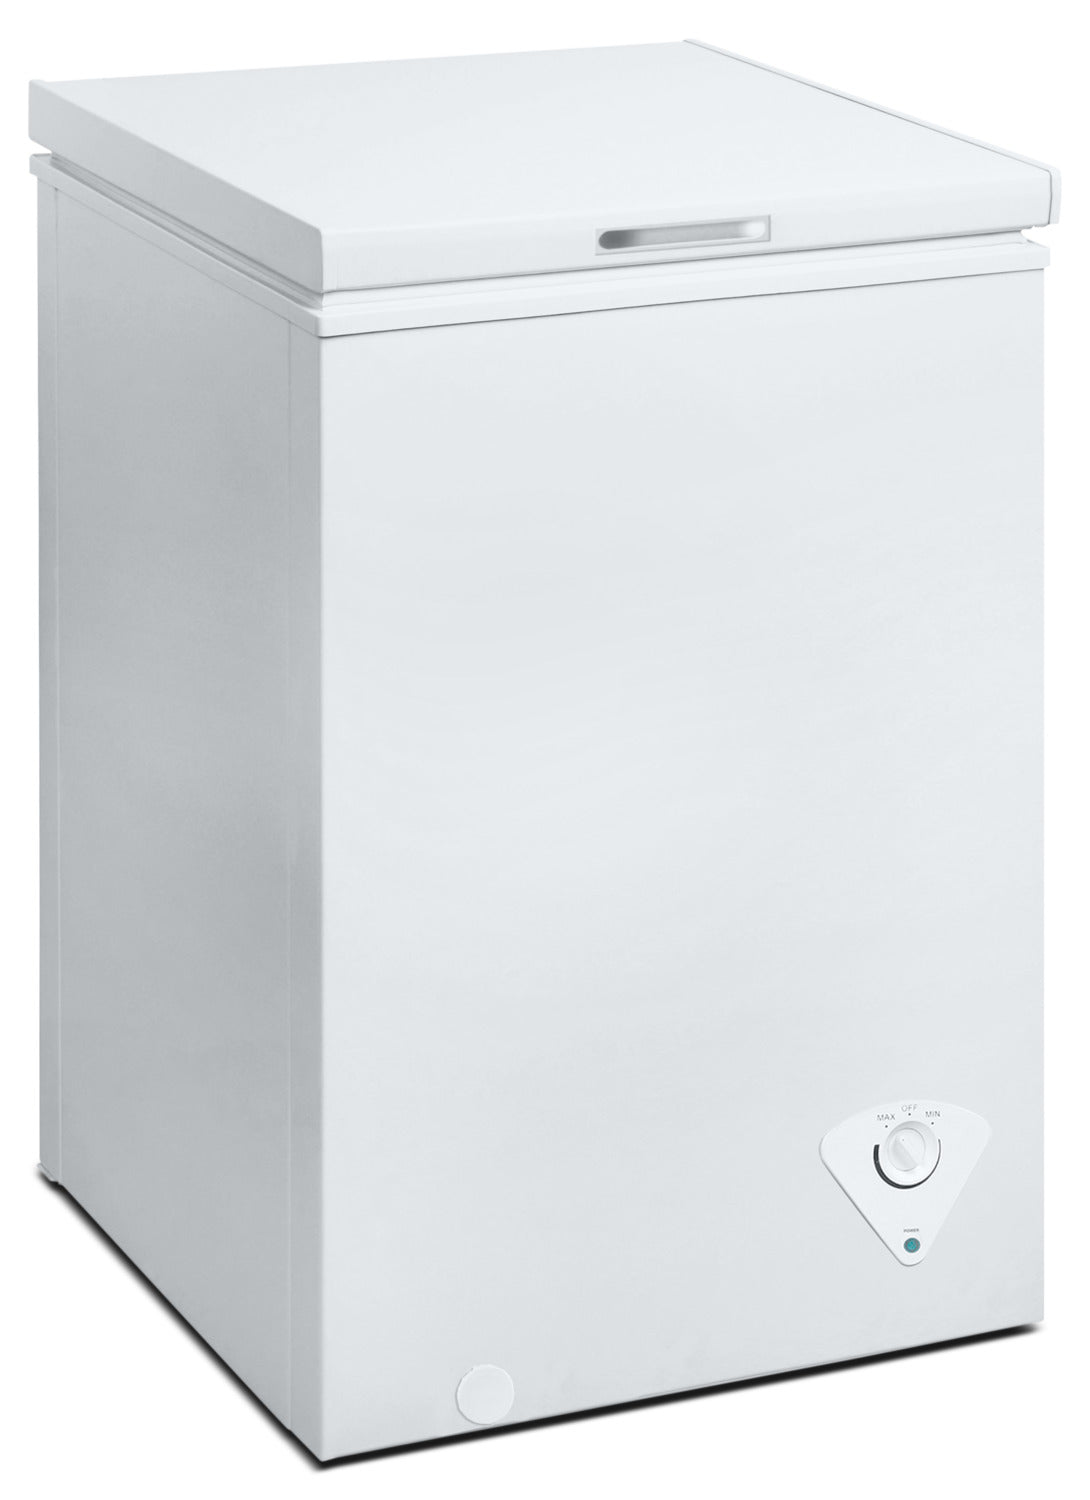 Midea 3 5 Cu  Ft  Chest Freezer - White